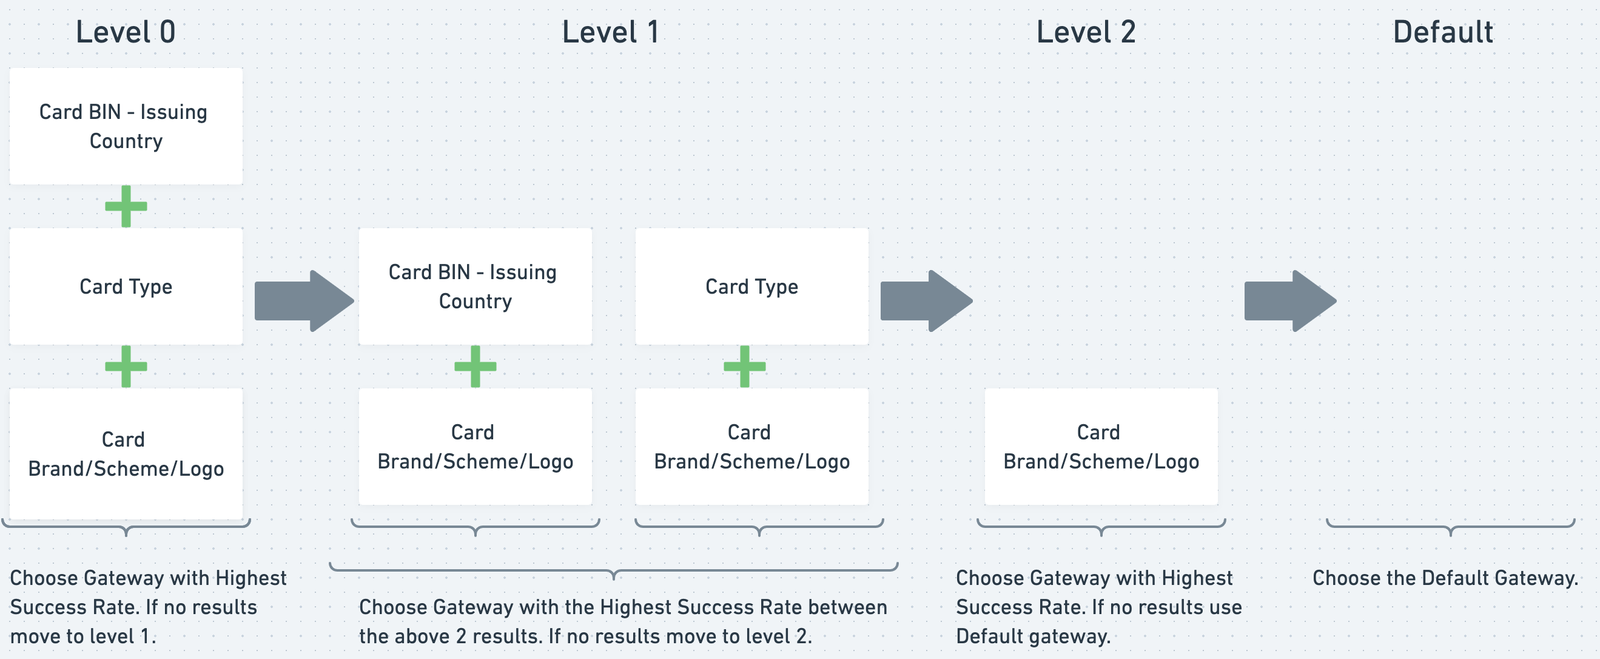 a diagram that shows how card transaction routing works